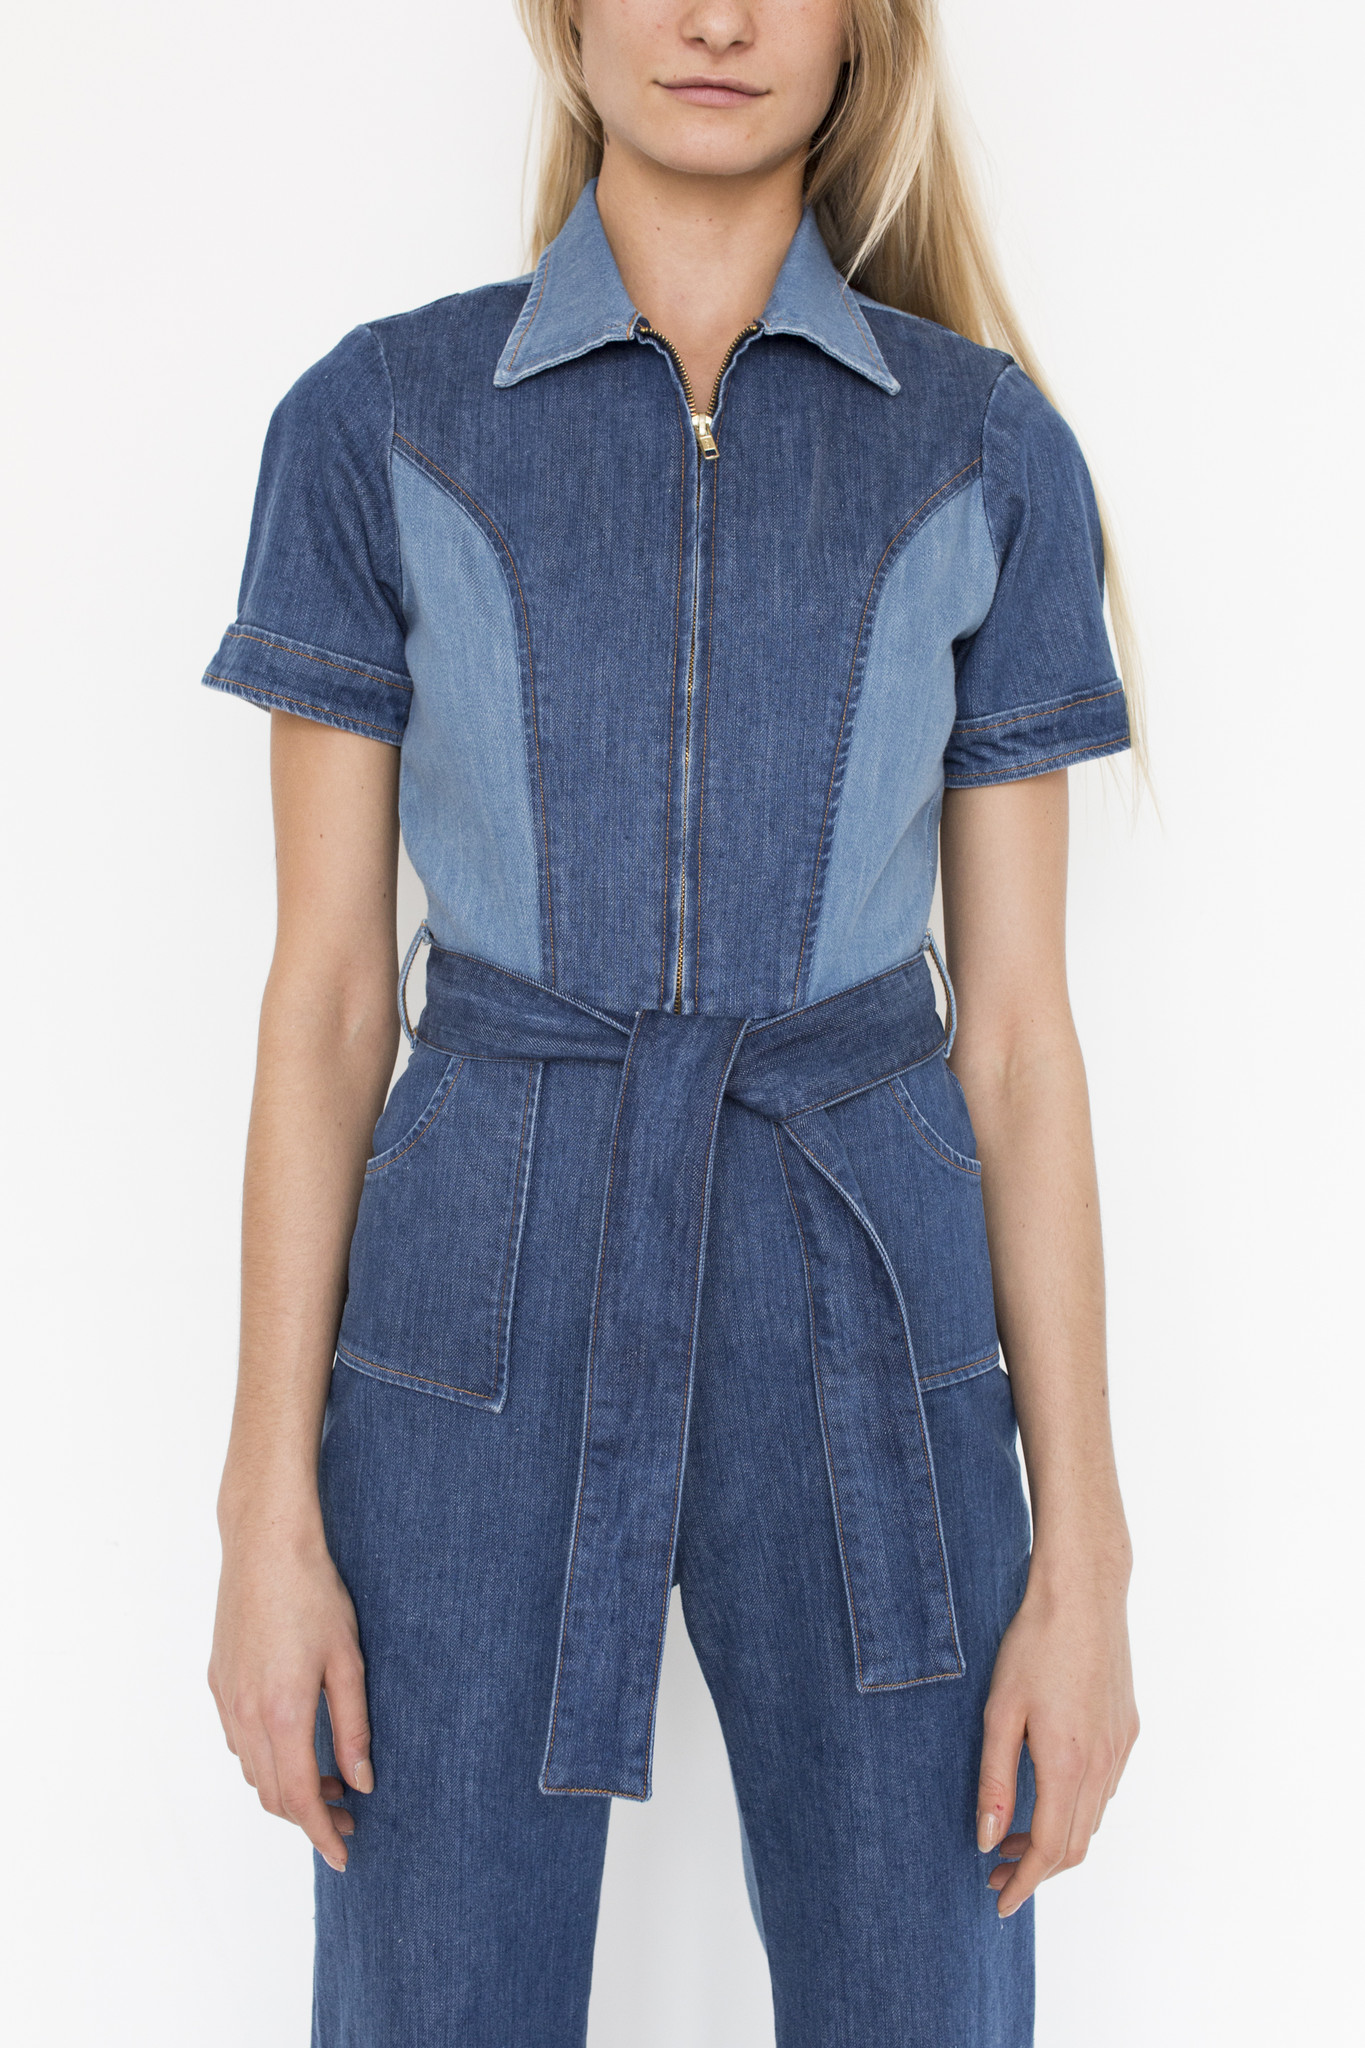 From royal-blue rompers with soft, cascading drapes to fitted jumpsuits that create a slim and sleek silhouette, you can find on-trend, fun, and comfortable women's jumpsuits at teraisompcz8d.ga Categories.